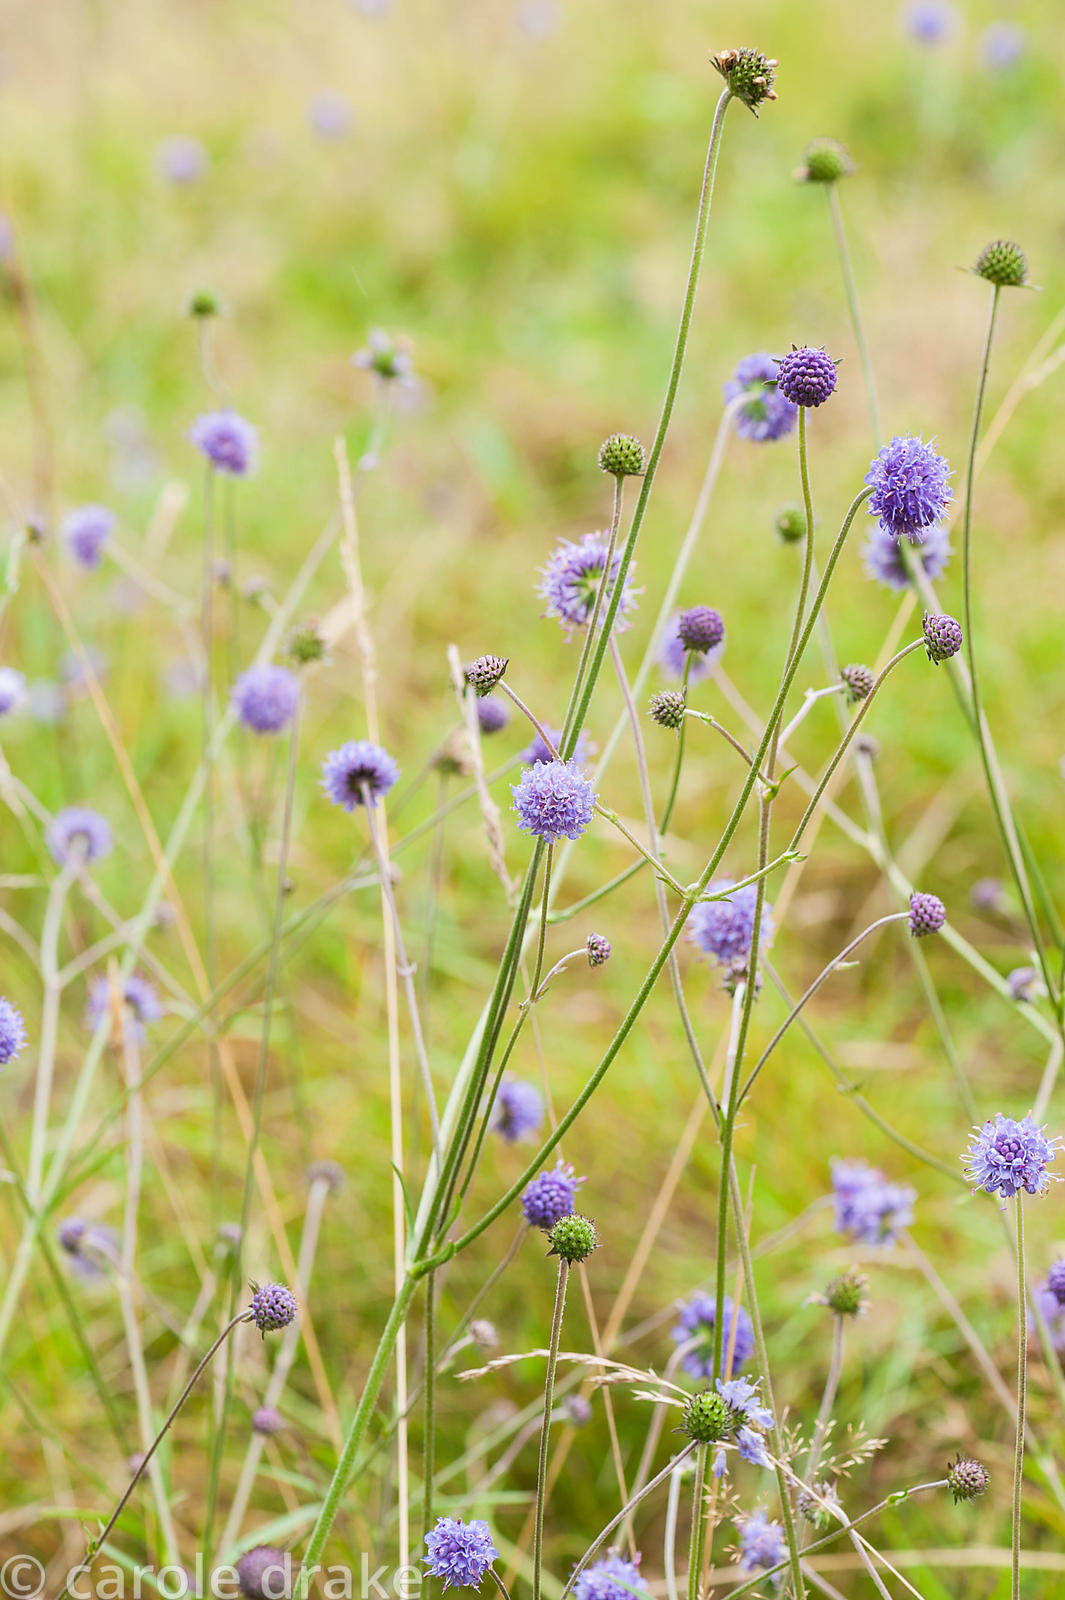 Devil's bit scabious, Succisa pratensis, on a steep slope below the house. Perrycroft, Upper Colwall, Herefordshire, UK